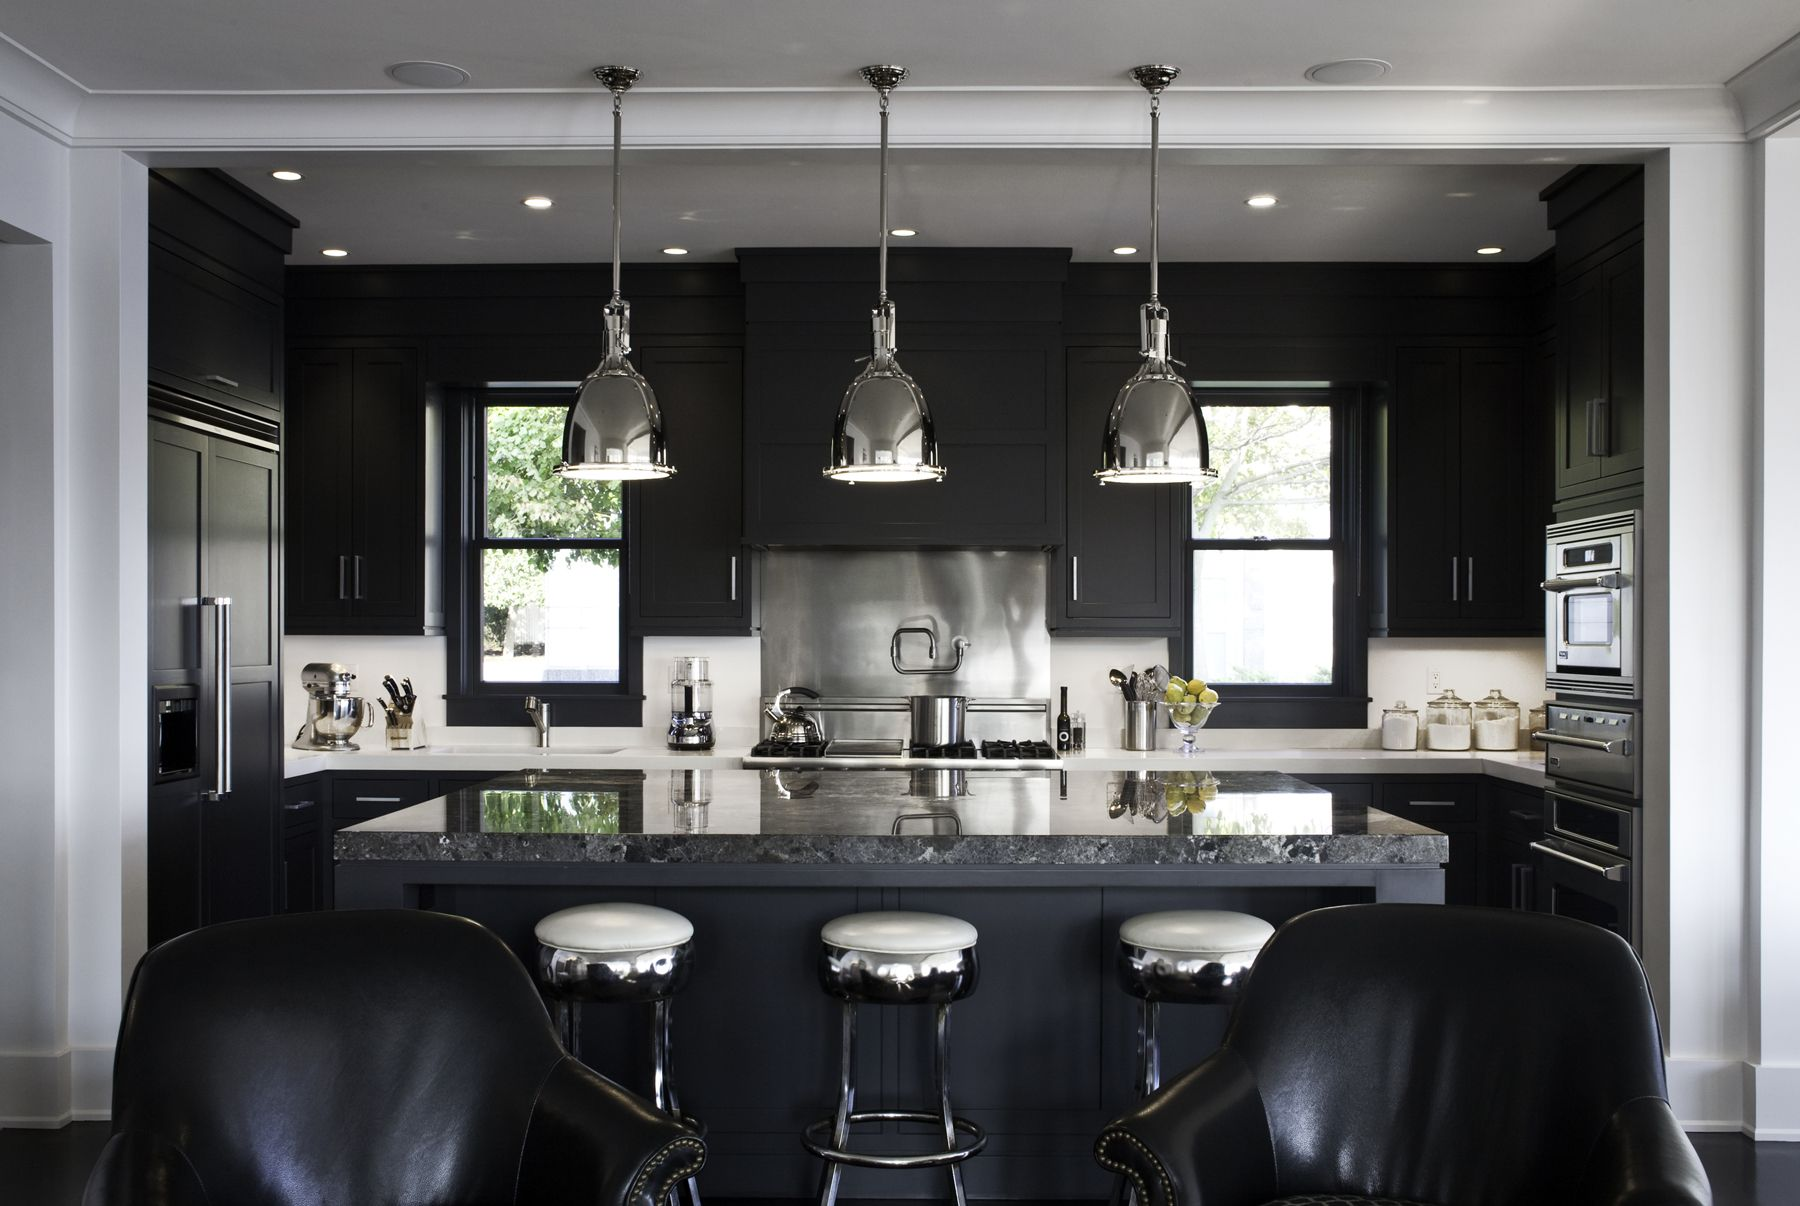 Kitchen Designs With Black Cabinets Amusing 30 Best Black Kitchen Cabinets  Kitchen Design Ideas With Black . Design Decoration